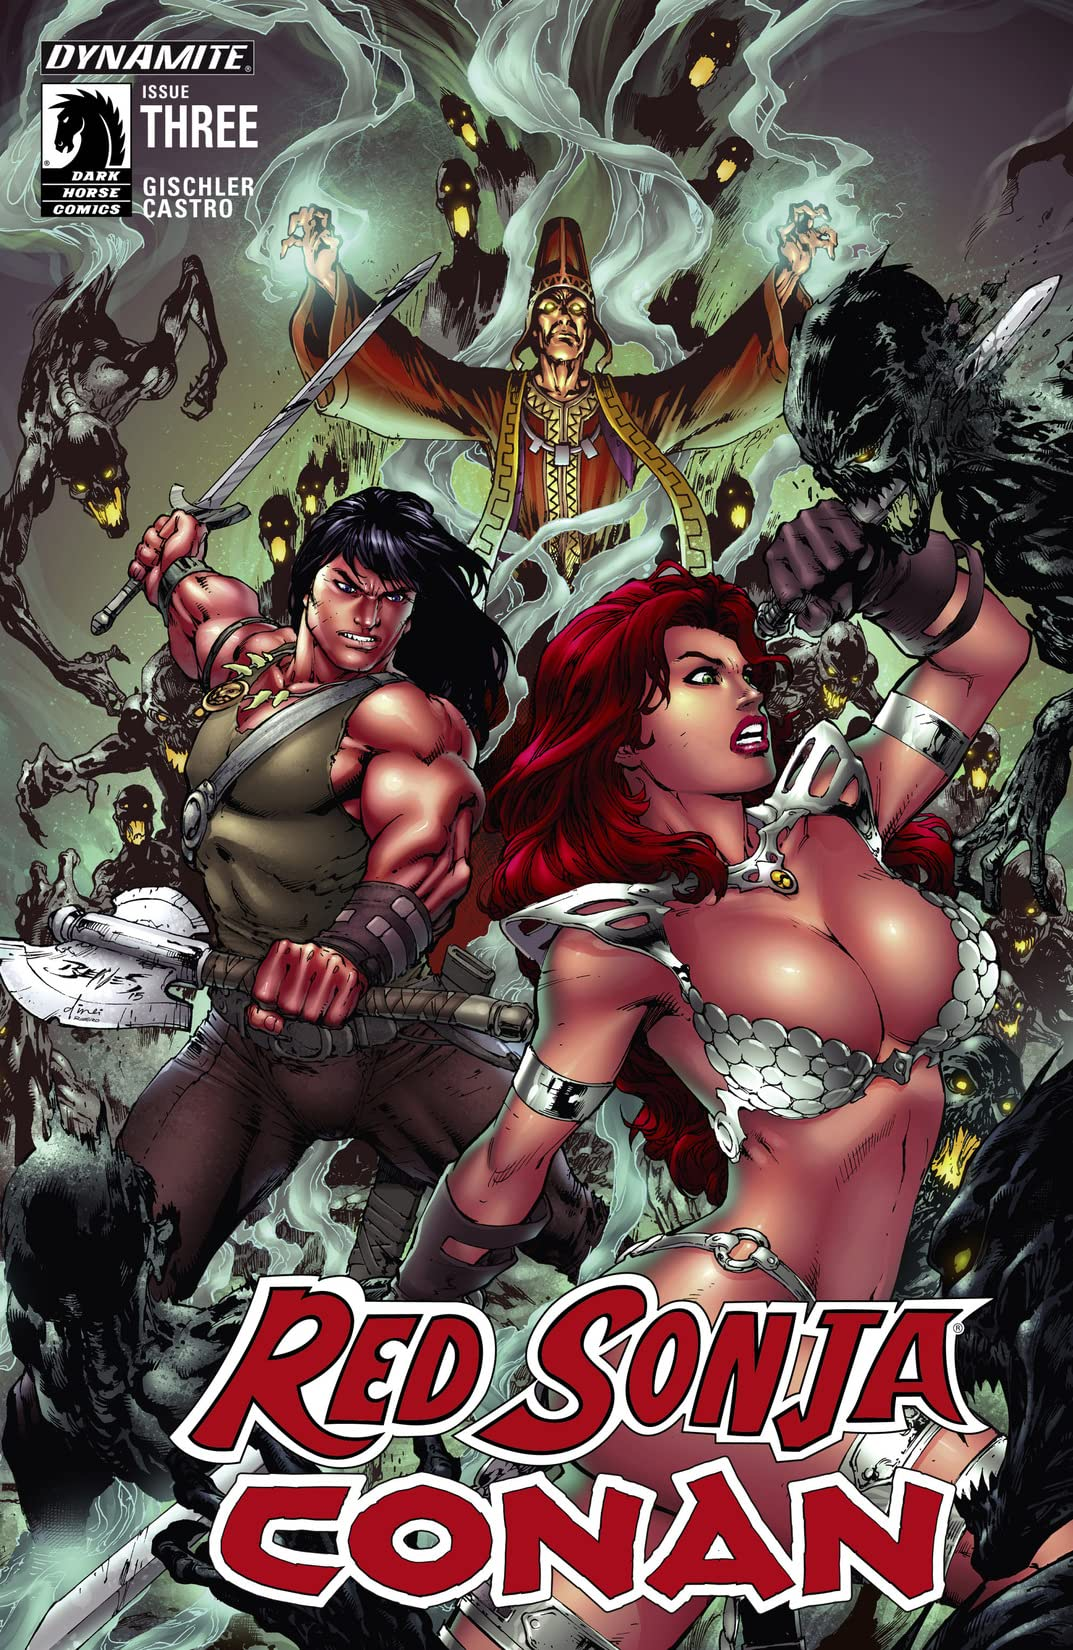 Red Sonja/Conan #3 (of 4): Digital Exclusive Edition